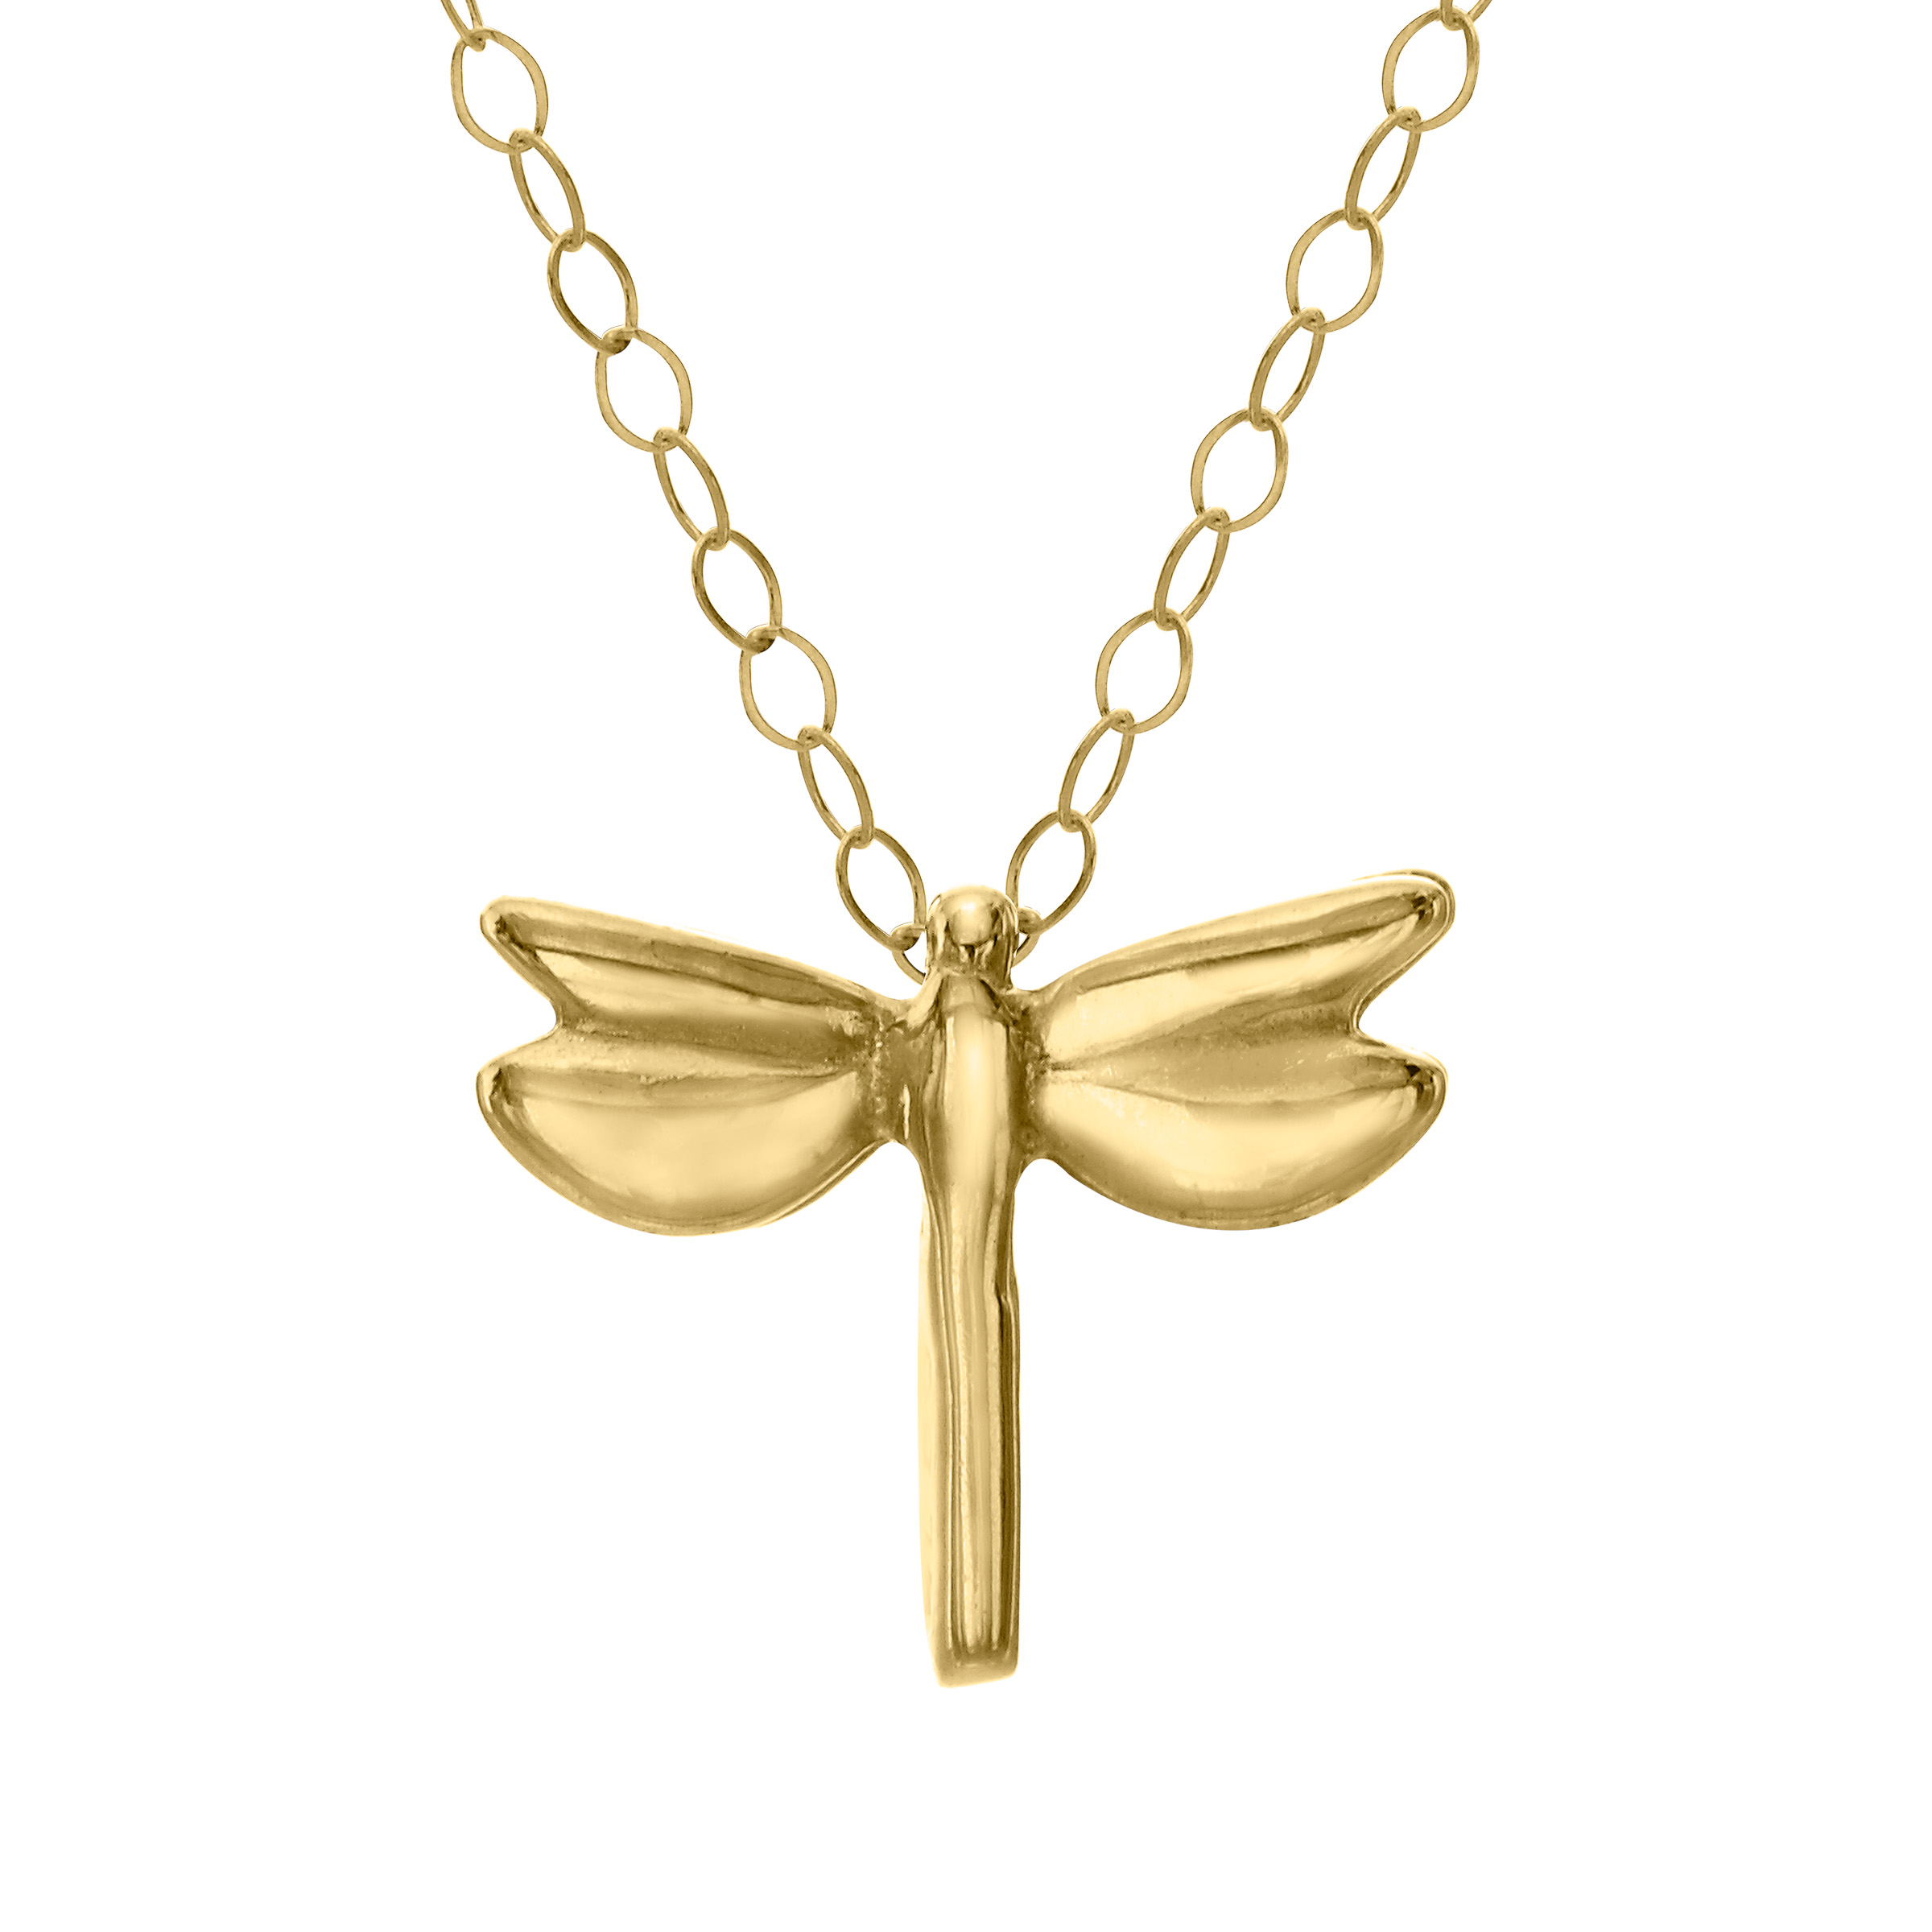 Just Gold Petite Expressions Dragonfly Pendant Necklace in 10kt Gold